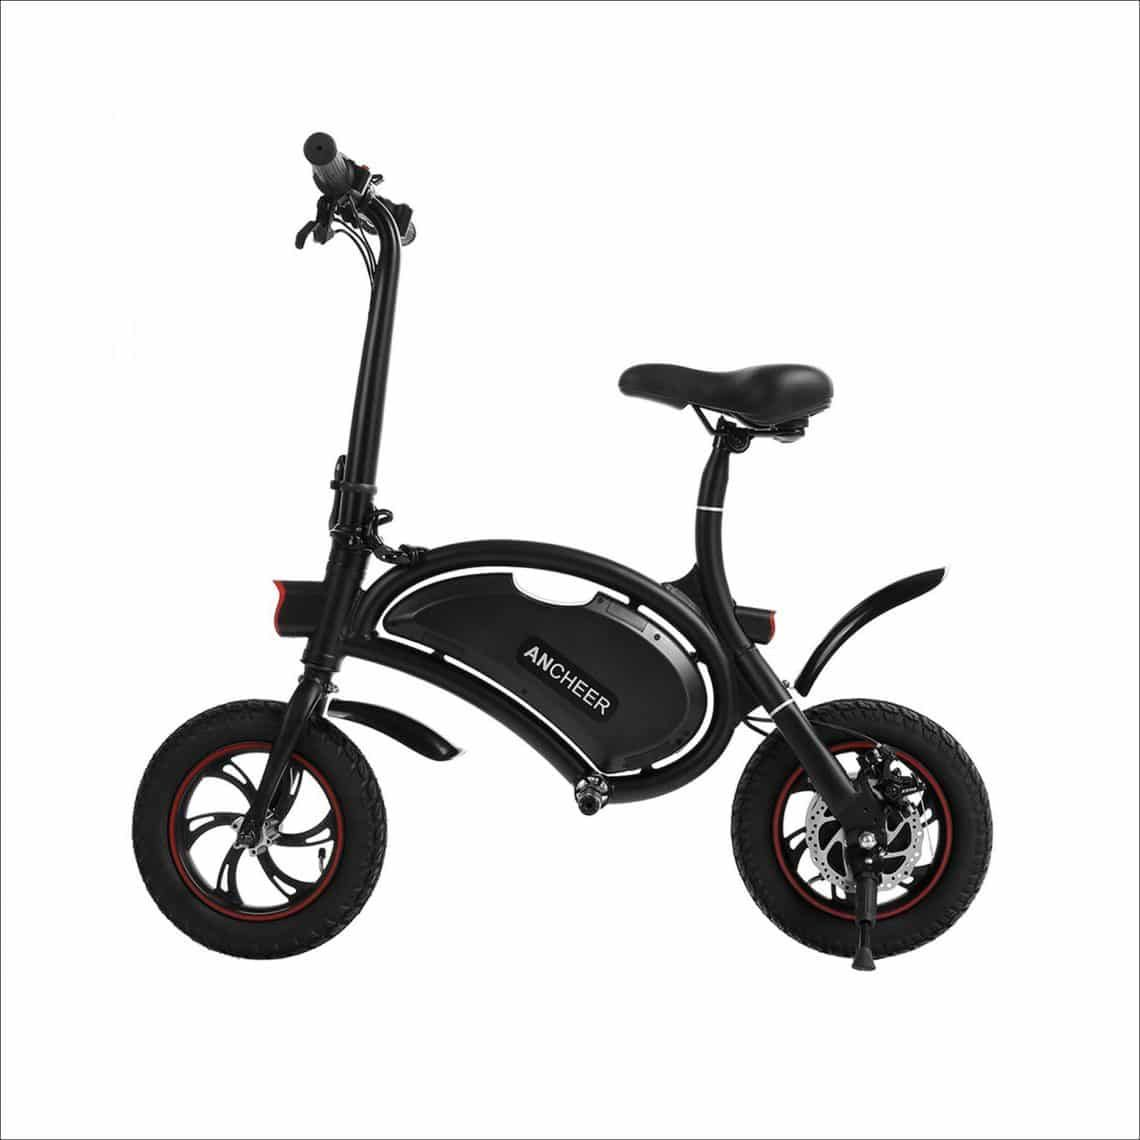 Top 10 Best Folding Electric Bikes In 2020 Reviews Folding Electric Bike Electric Bike Bike